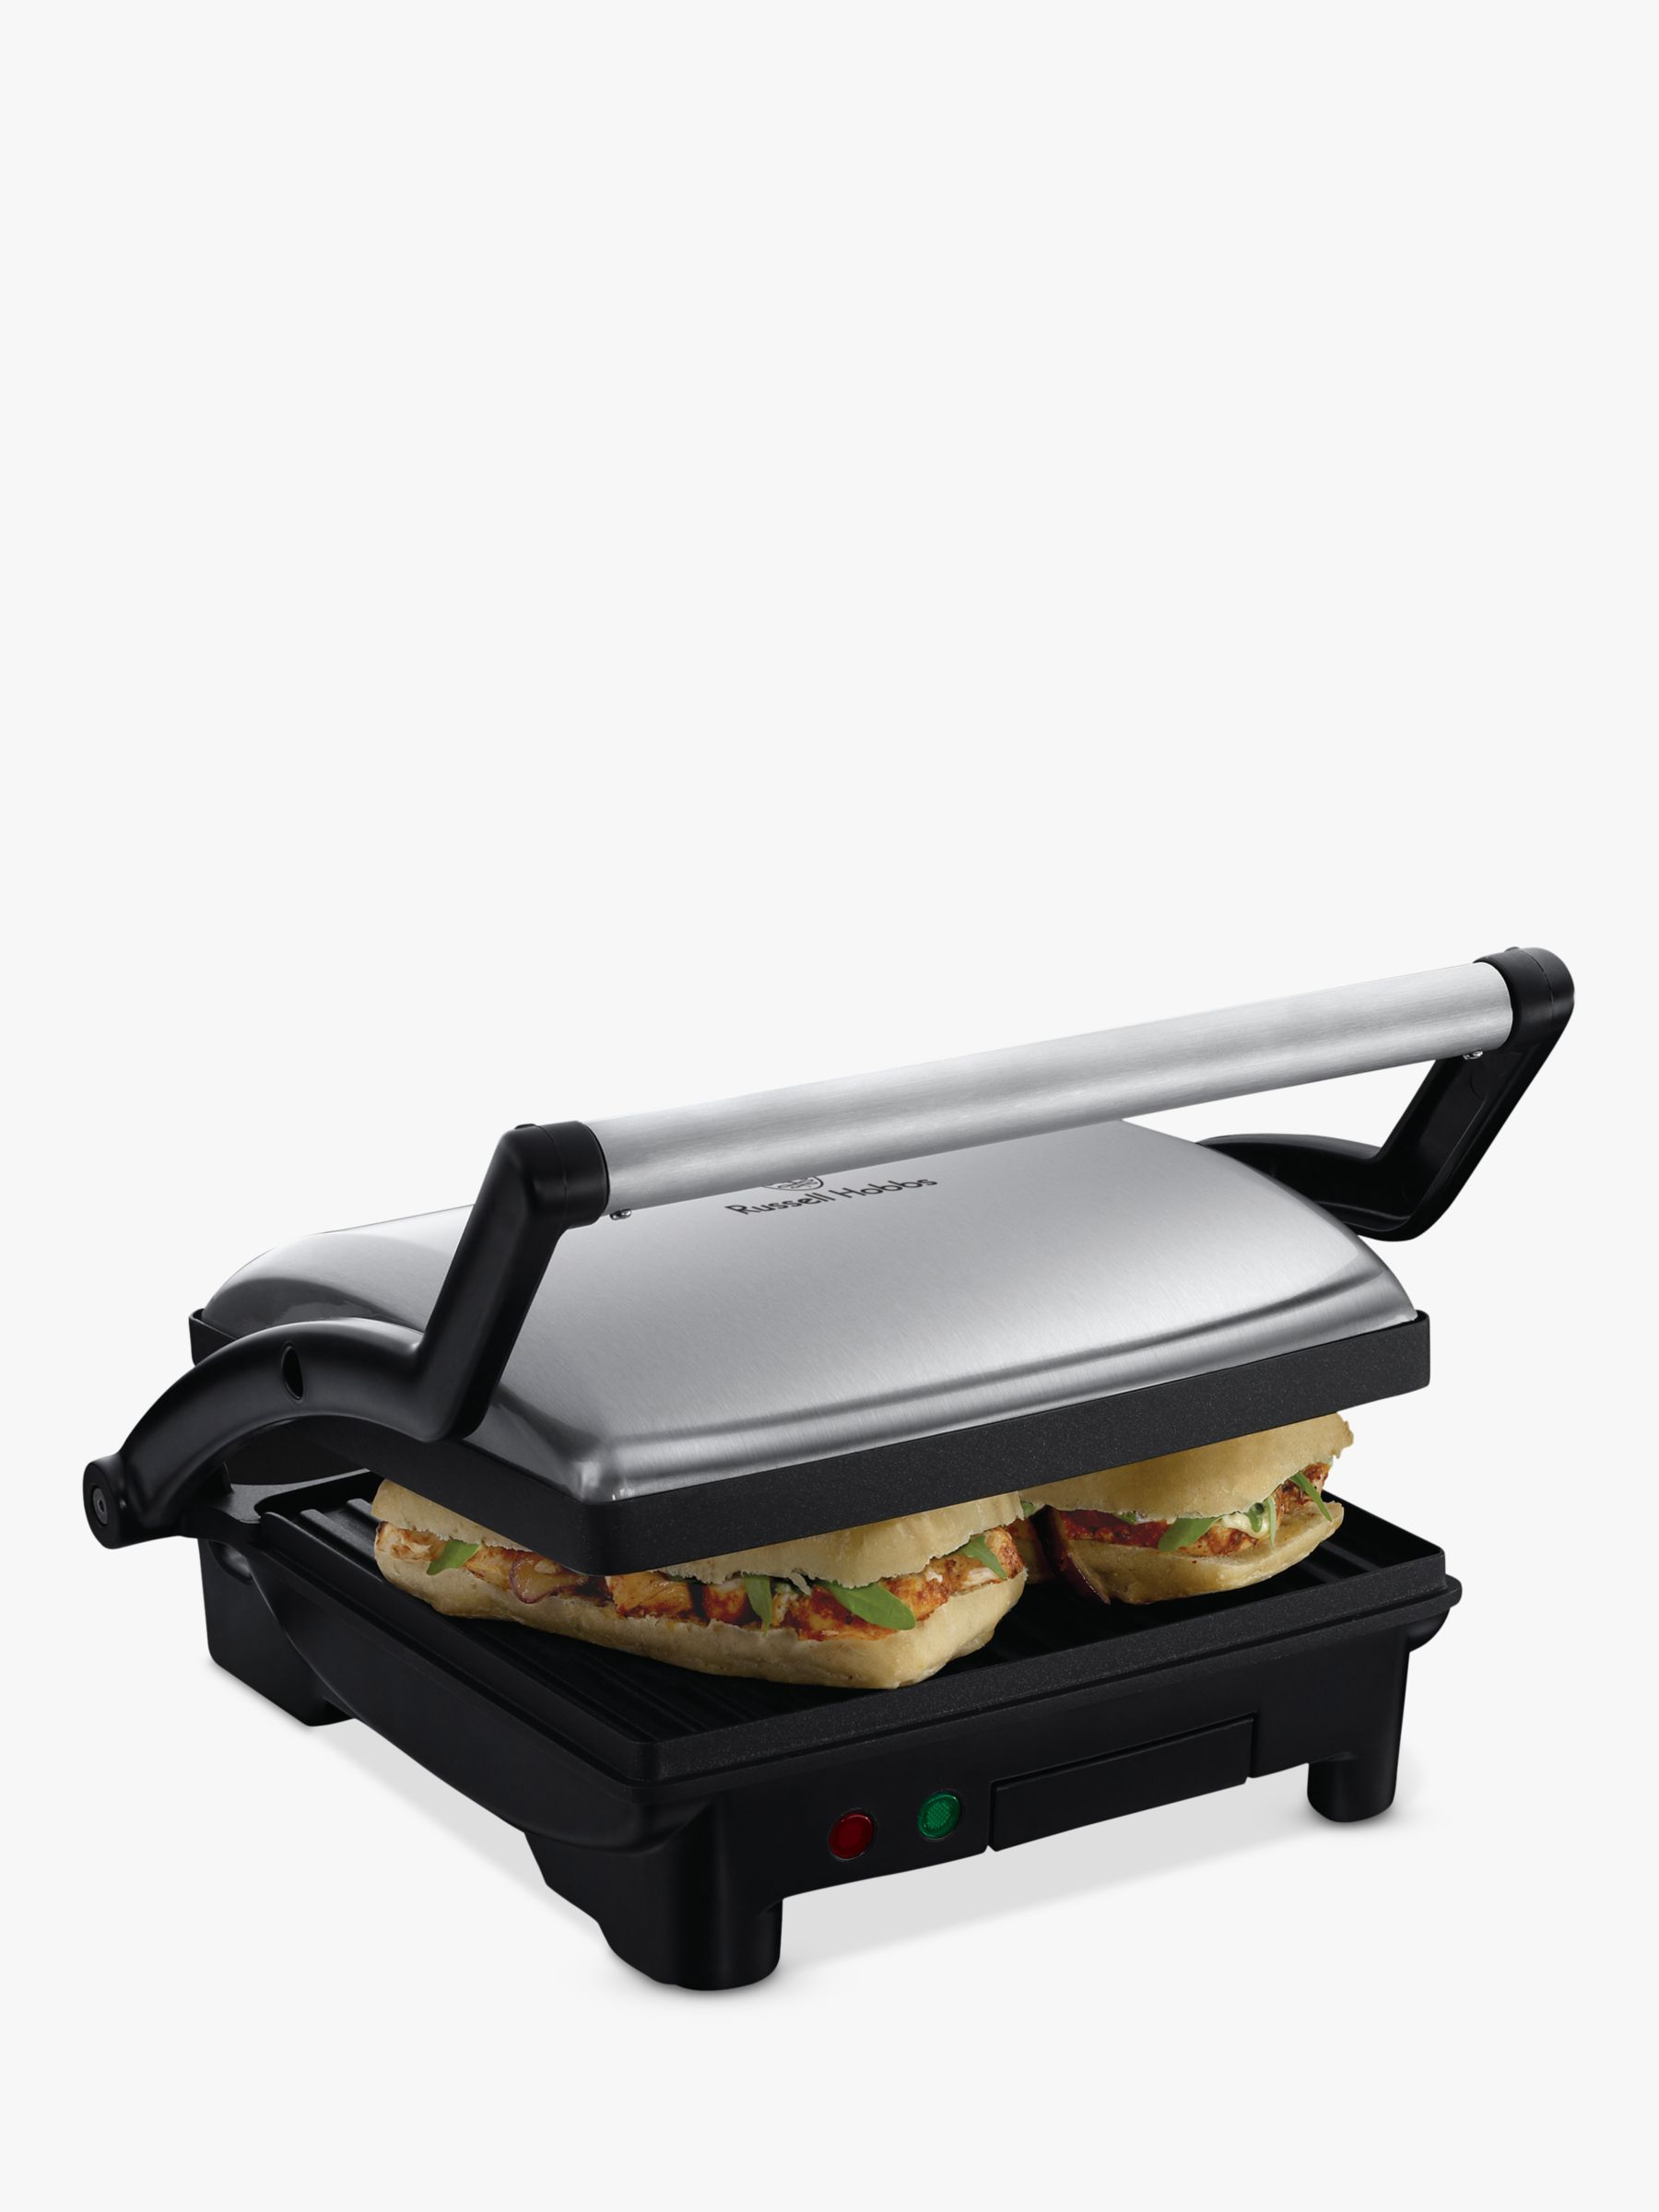 Grille Panini Russell Hobbs Cook At Home 3 In 1 Panini Maker Grill And Griddle